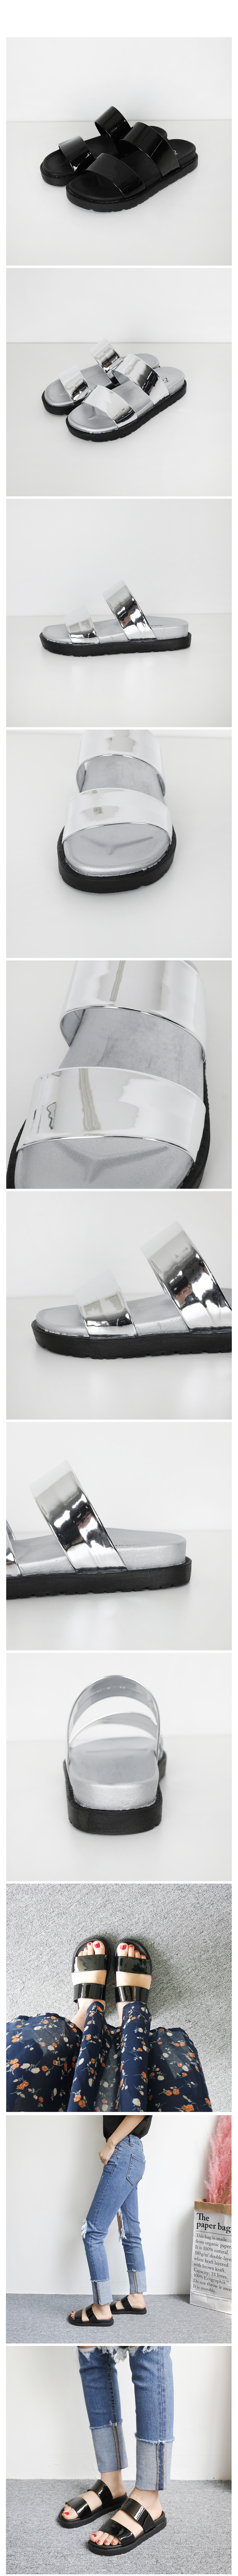 Two-strap slippers